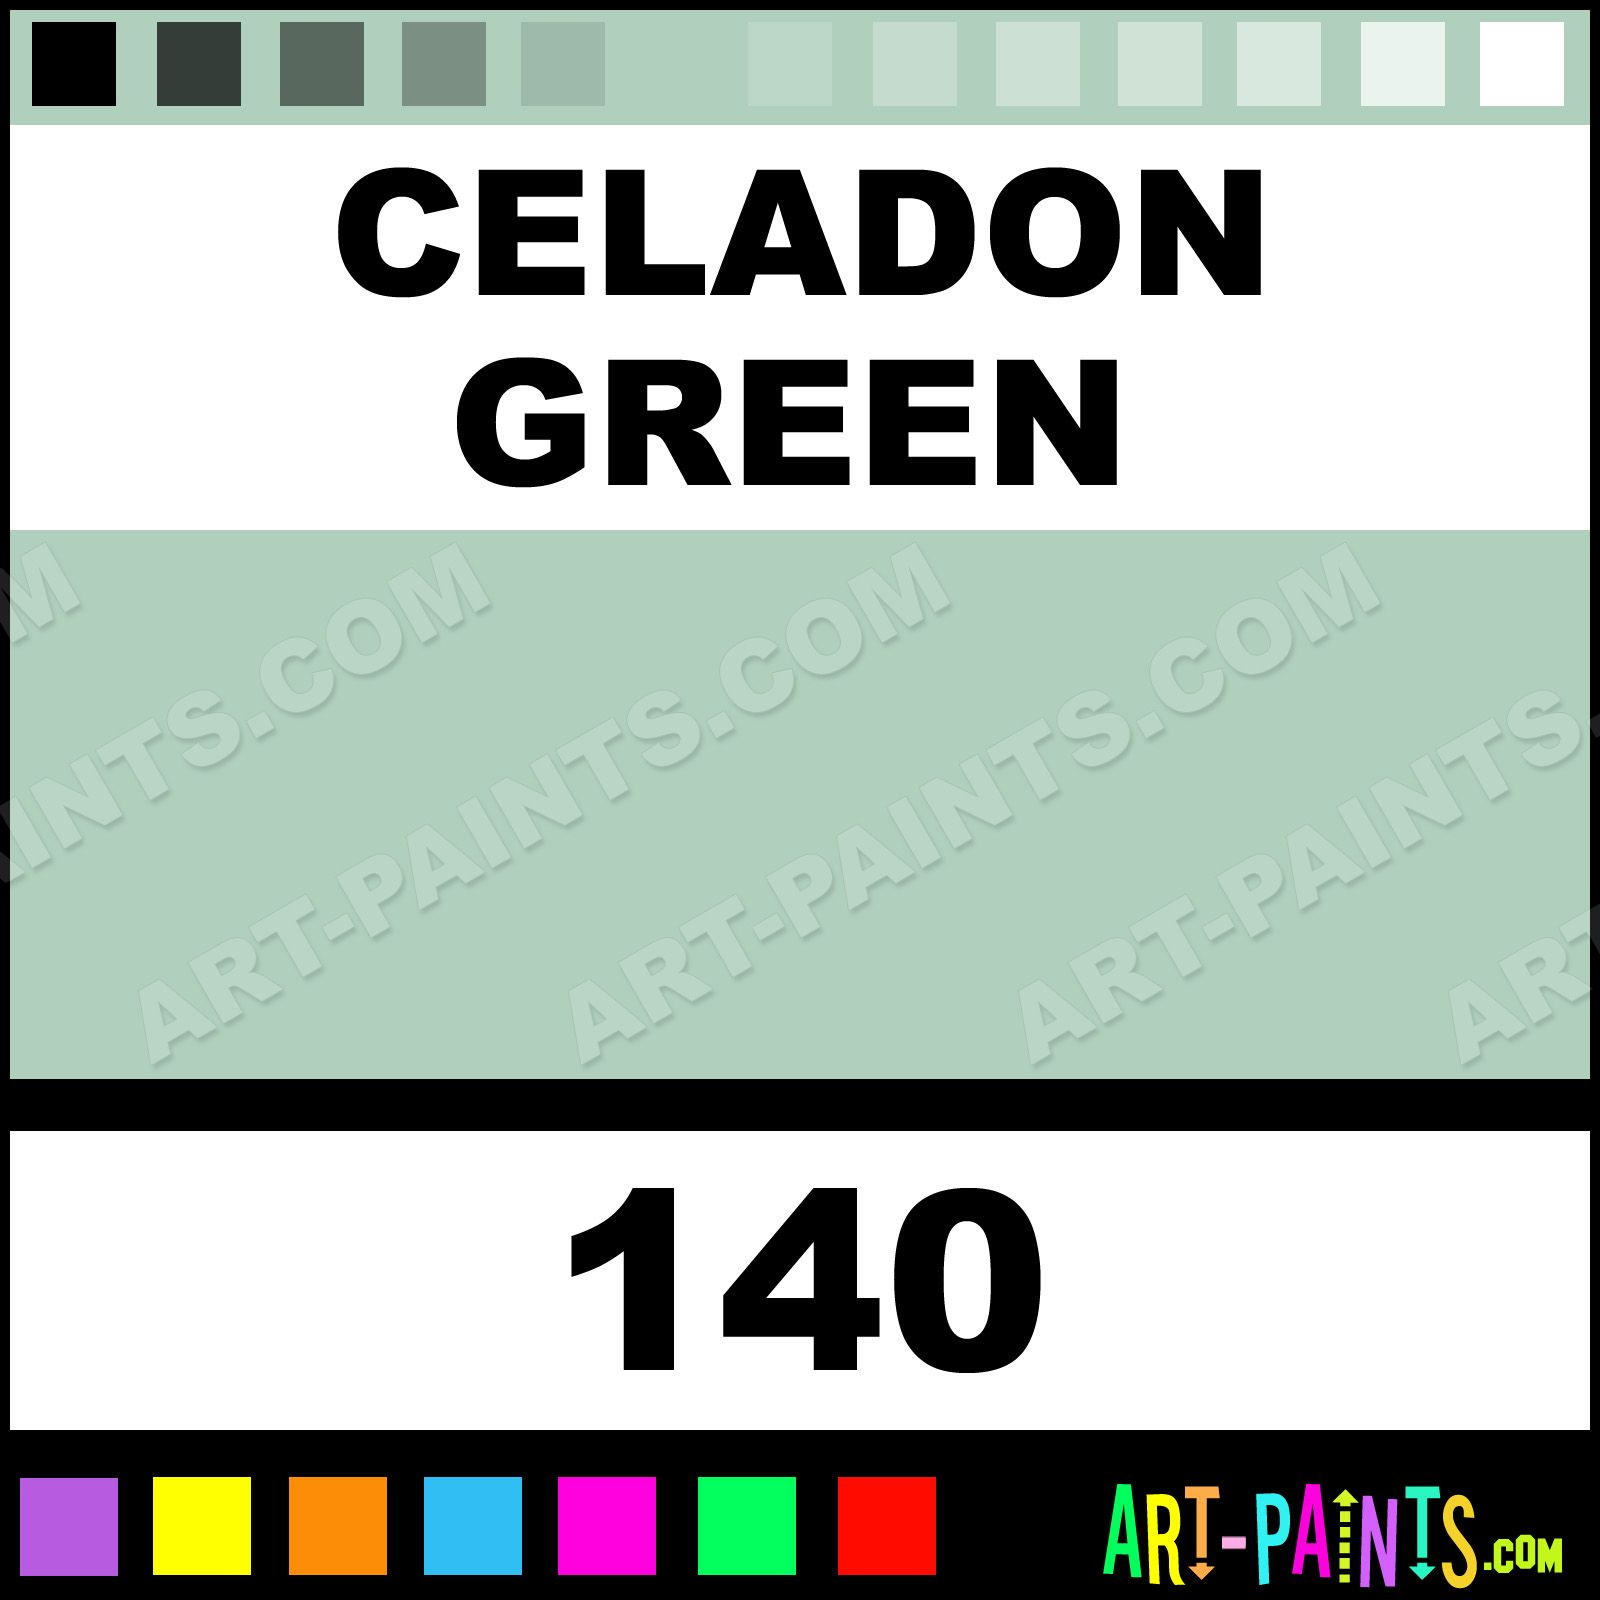 Celadon green four in one paintmarker marking pen paints 140 celadon green four in one paintmarker marking pen paints 140 celadon green paint celadon green color prismacolor four in one paint nvjuhfo Images